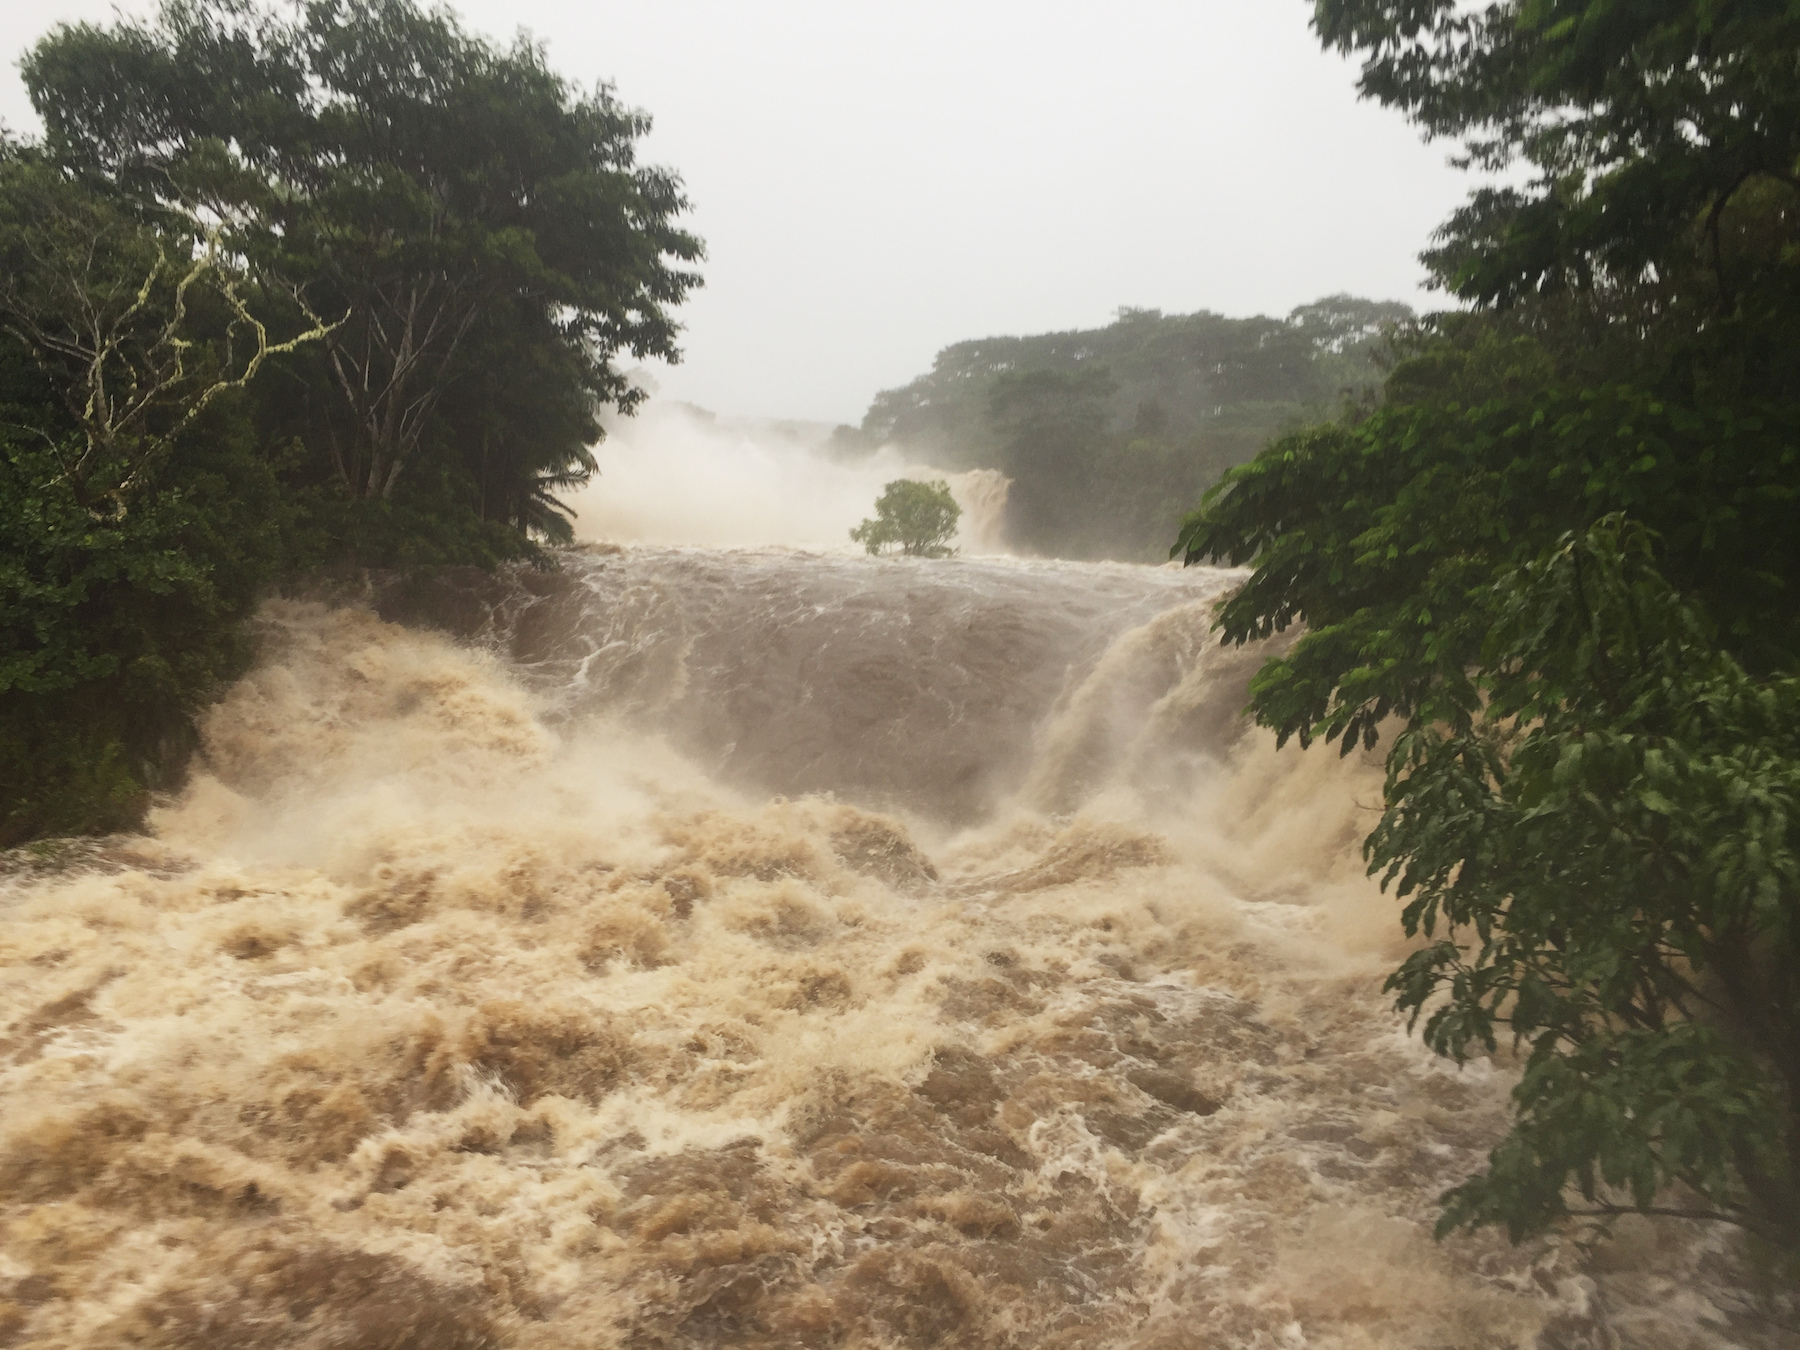 "<div class=""meta image-caption""><div class=""origin-logo origin-image ap""><span>AP</span></div><span class=""caption-text"">This photo provided by Jessica Henricks shows flooding Thursday, August 23, 2018, Wailuku River near Hilo, Hawaii. (by Jessica Henricks via AP)</span></div>"